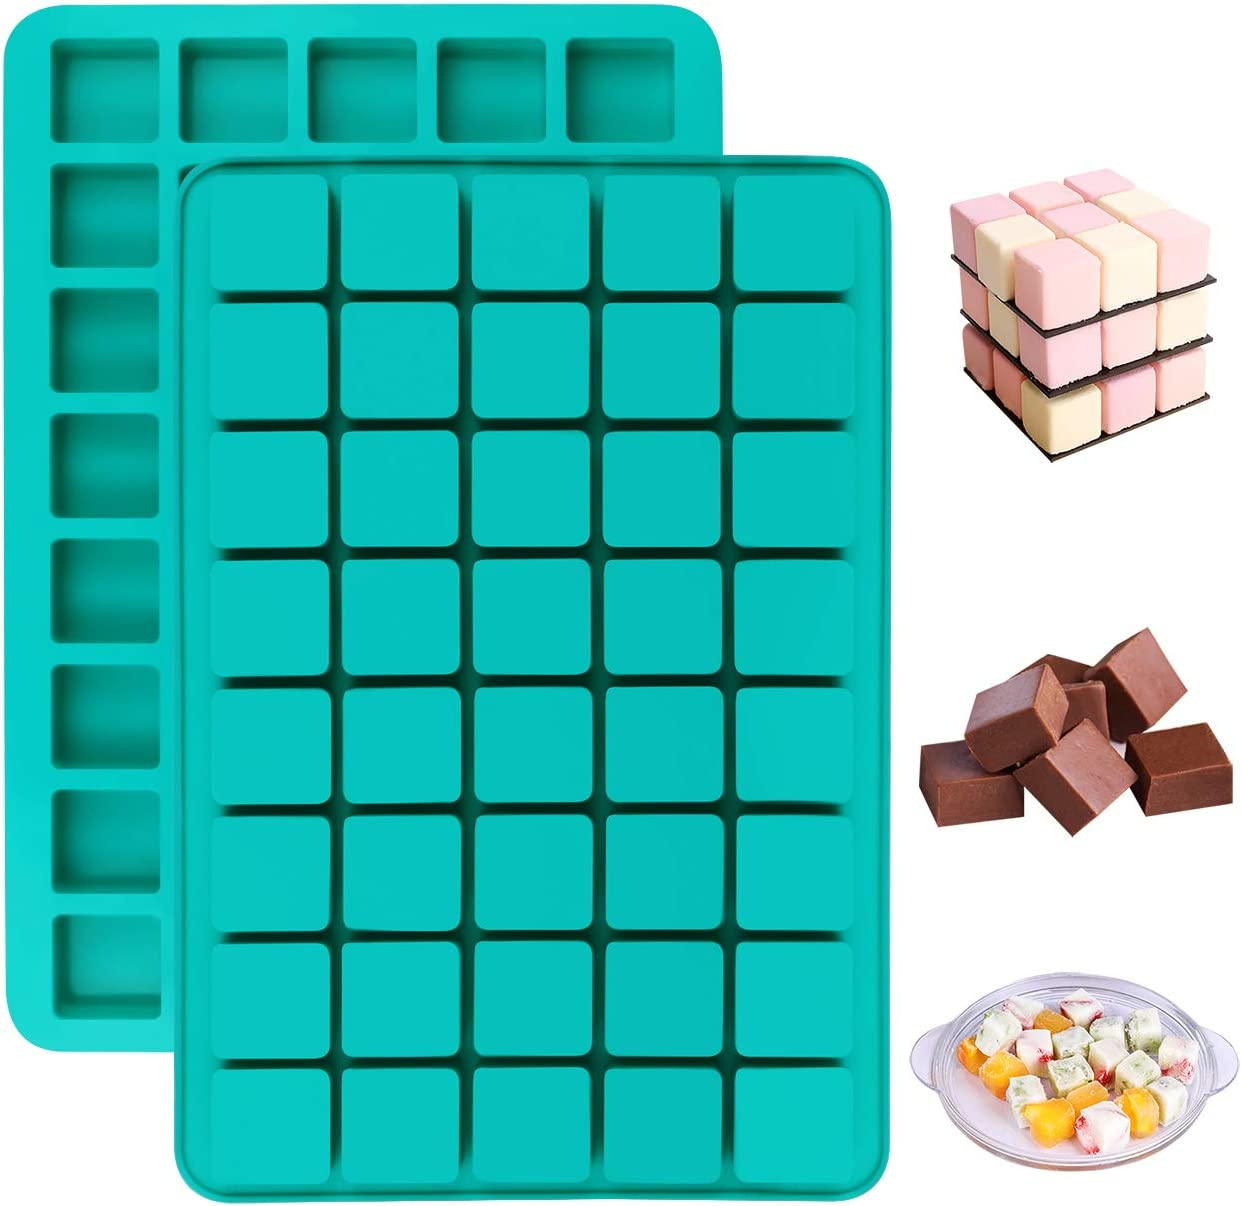 Mity rain 2 Pack 40-Cavity Square Caramel Candy Silicone Molds,Chocolate Truffles Mold,Whiskey Ice Cube Tray,Grid Fondant Mould,Hard Candy Mold Pralines Gummy Jelly Mold